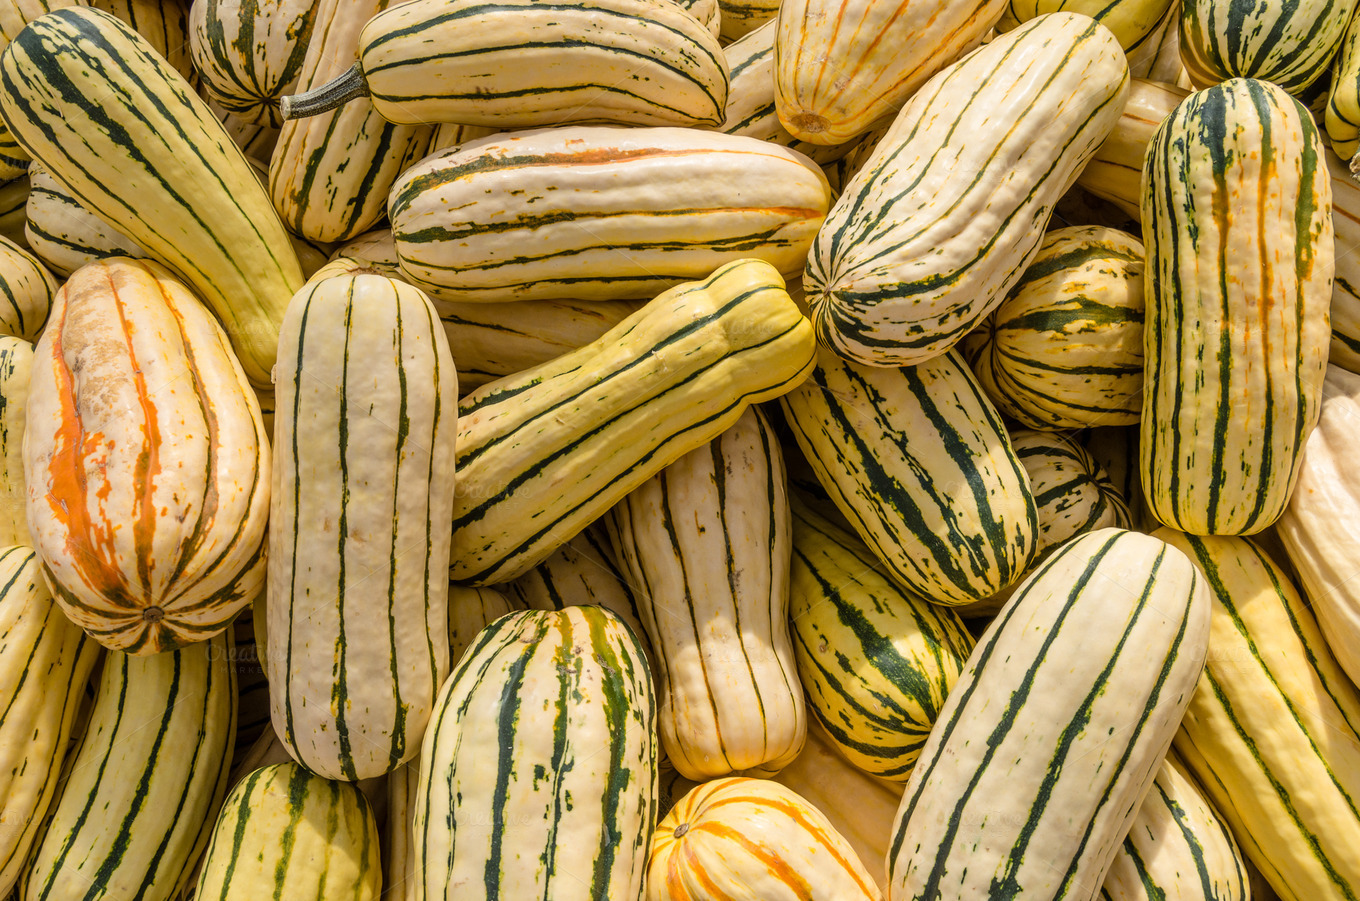 Delicata winter squash ~ Food & Drink Photos on Creative Market